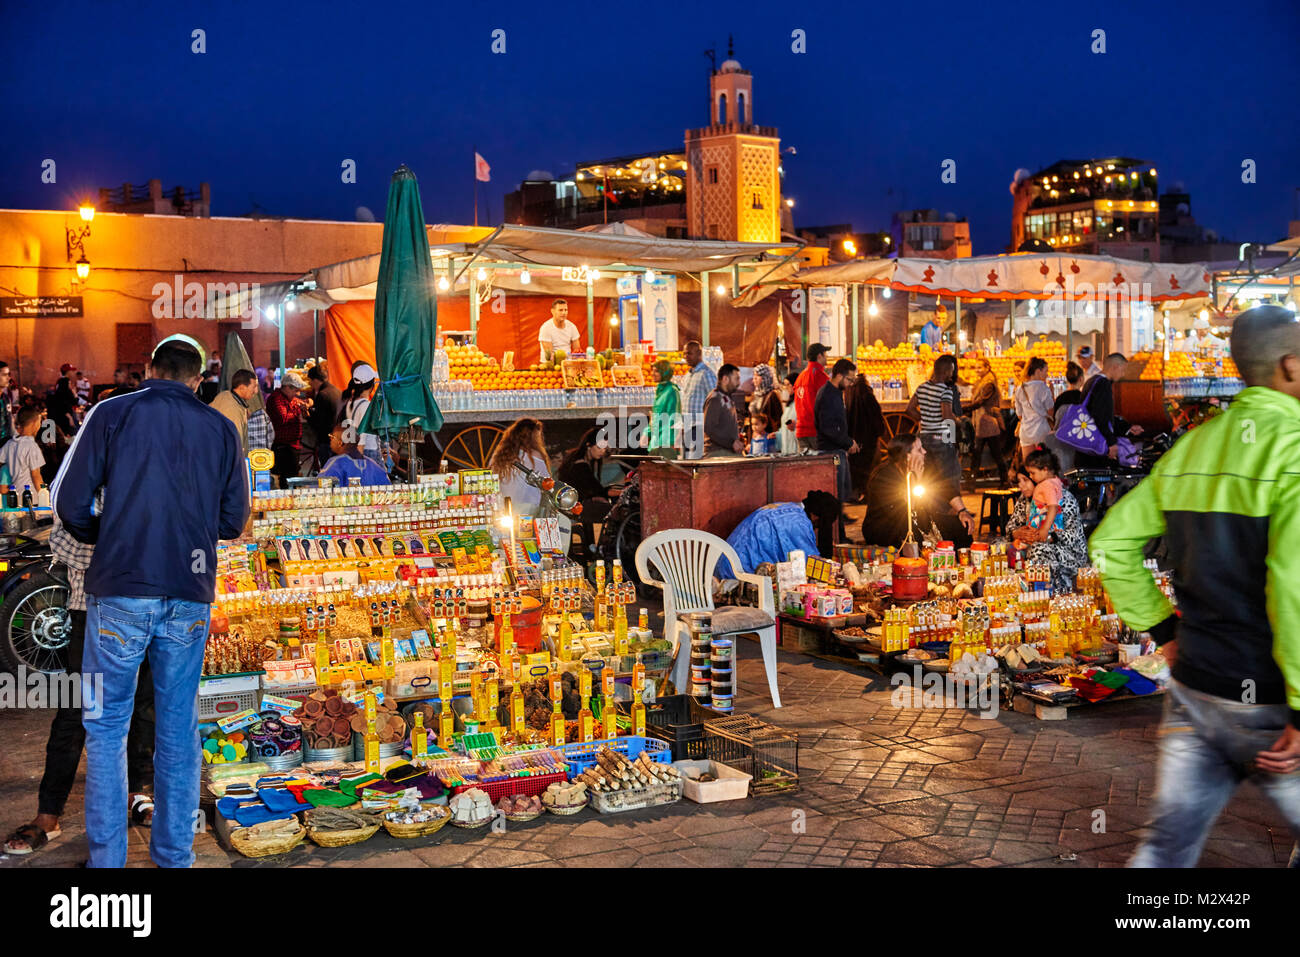 market stall on famous Djemaa el Fna at night, Marrakesh, Morocco, Africa Stock Photo